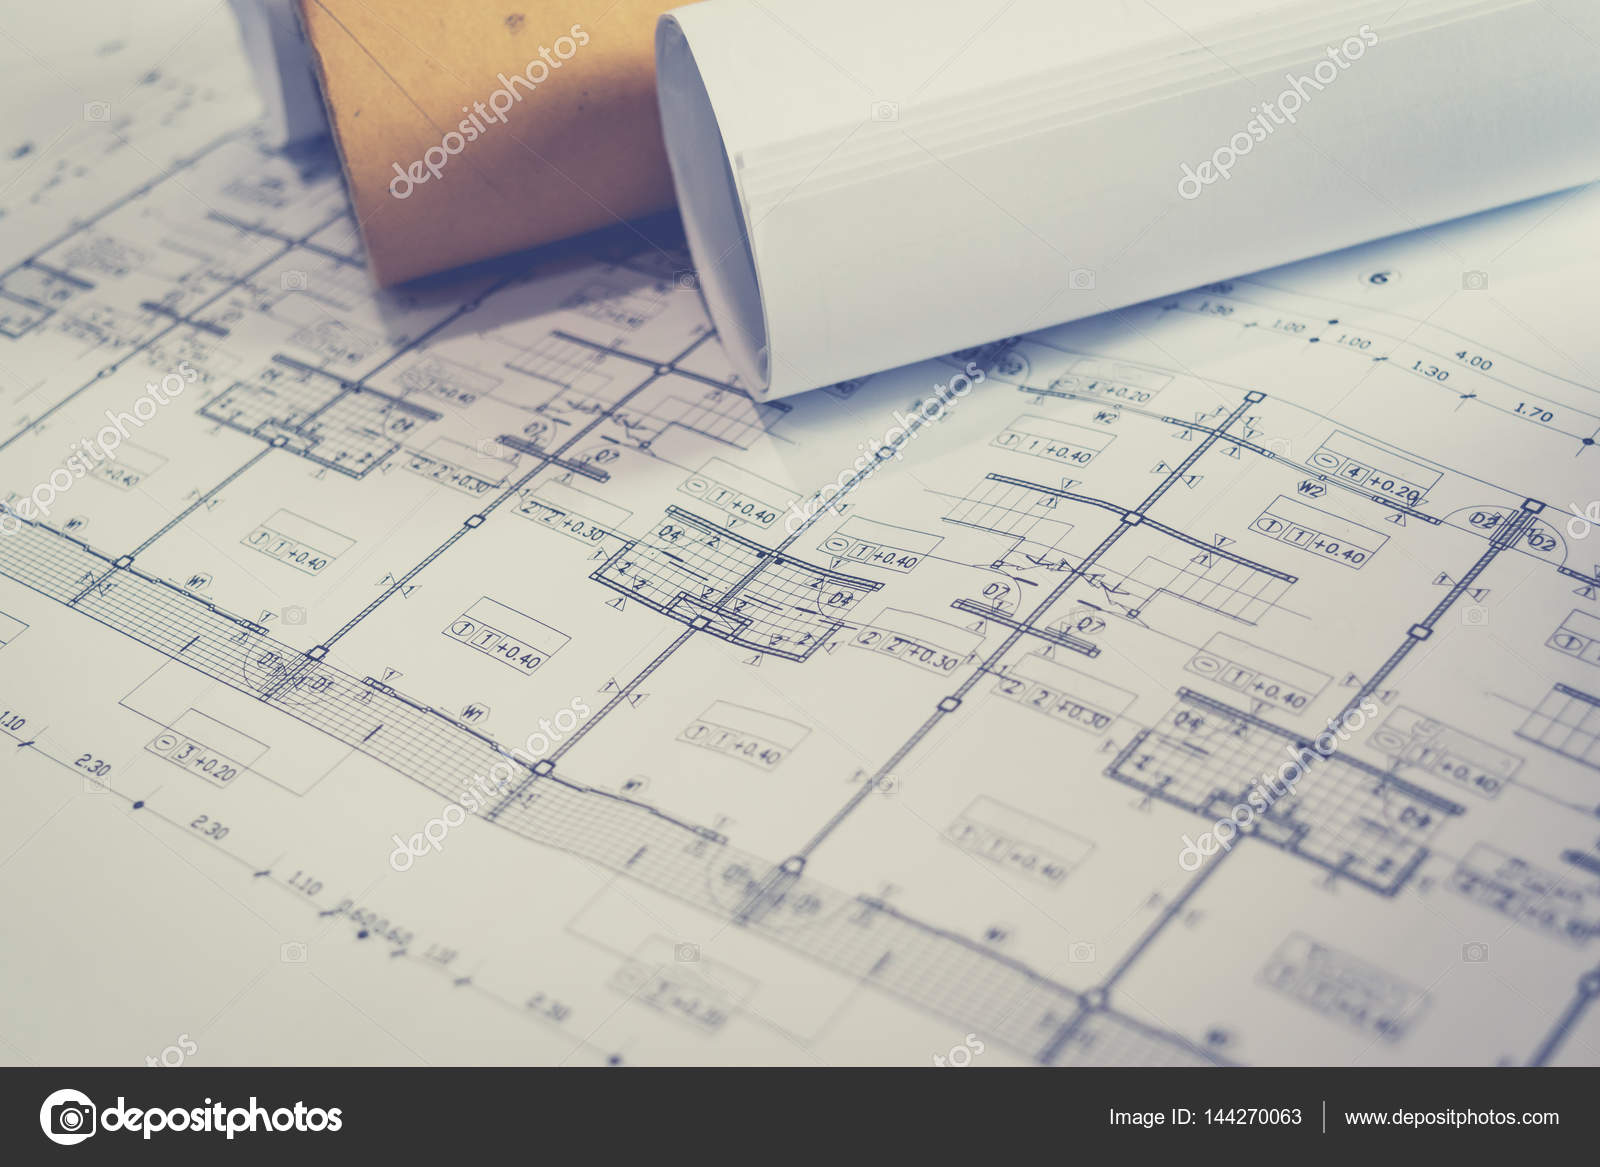 Engineering diagram blueprint paper drafting project sketch stock engineering diagram blueprint paper drafting project sketch stock photo malvernweather Image collections